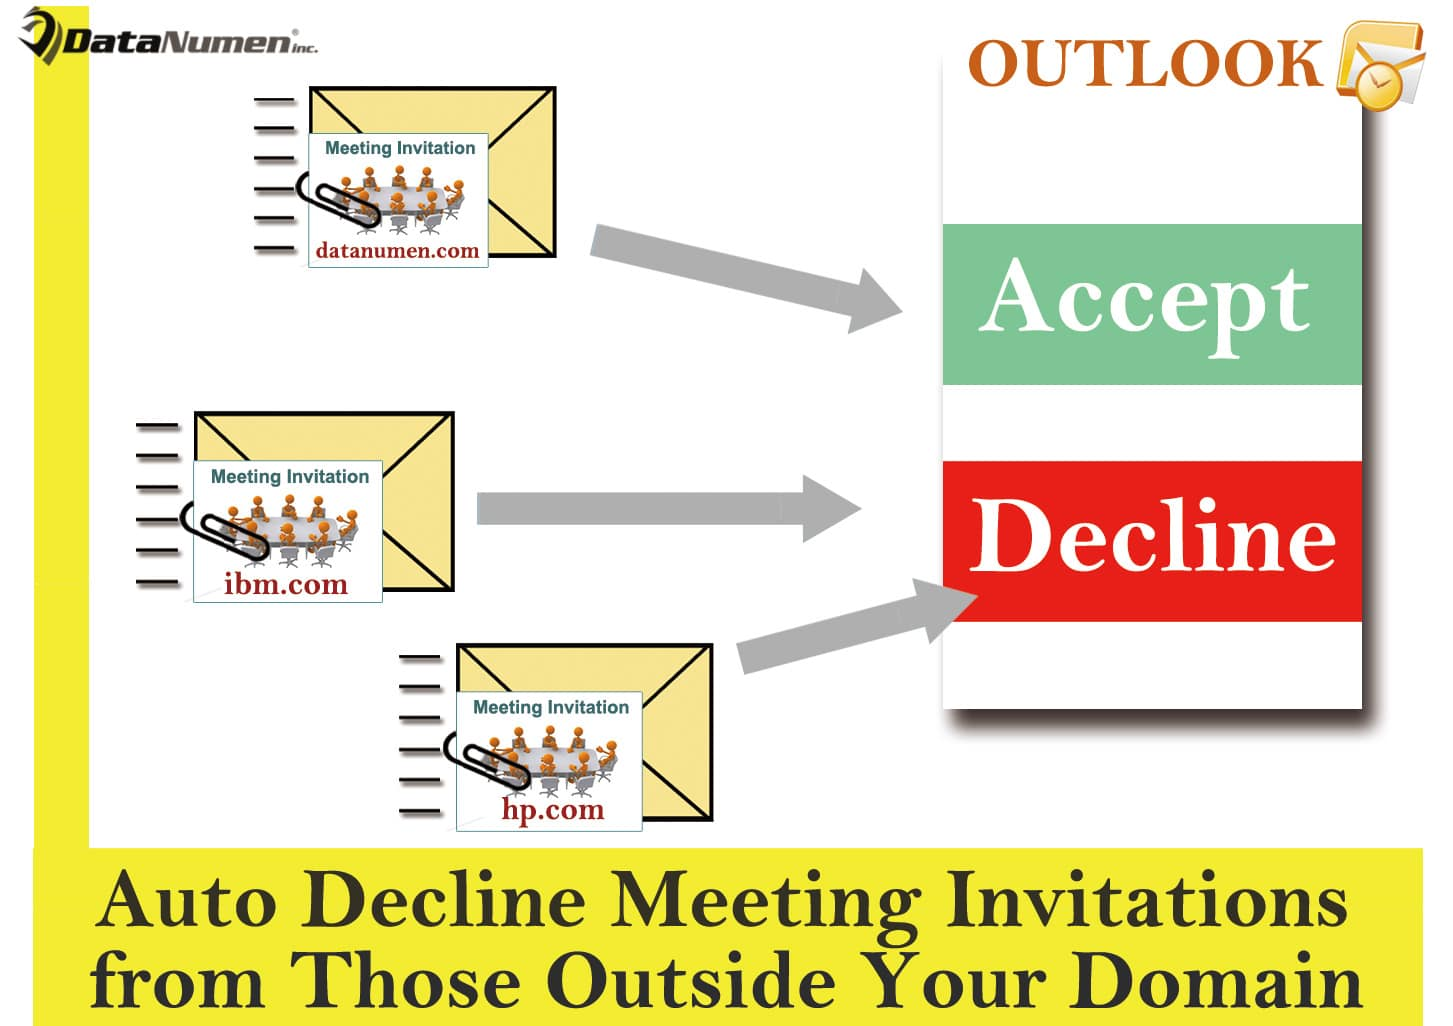 Auto Decline Meeting Invitations from Those Outside Your Domain in Outlook